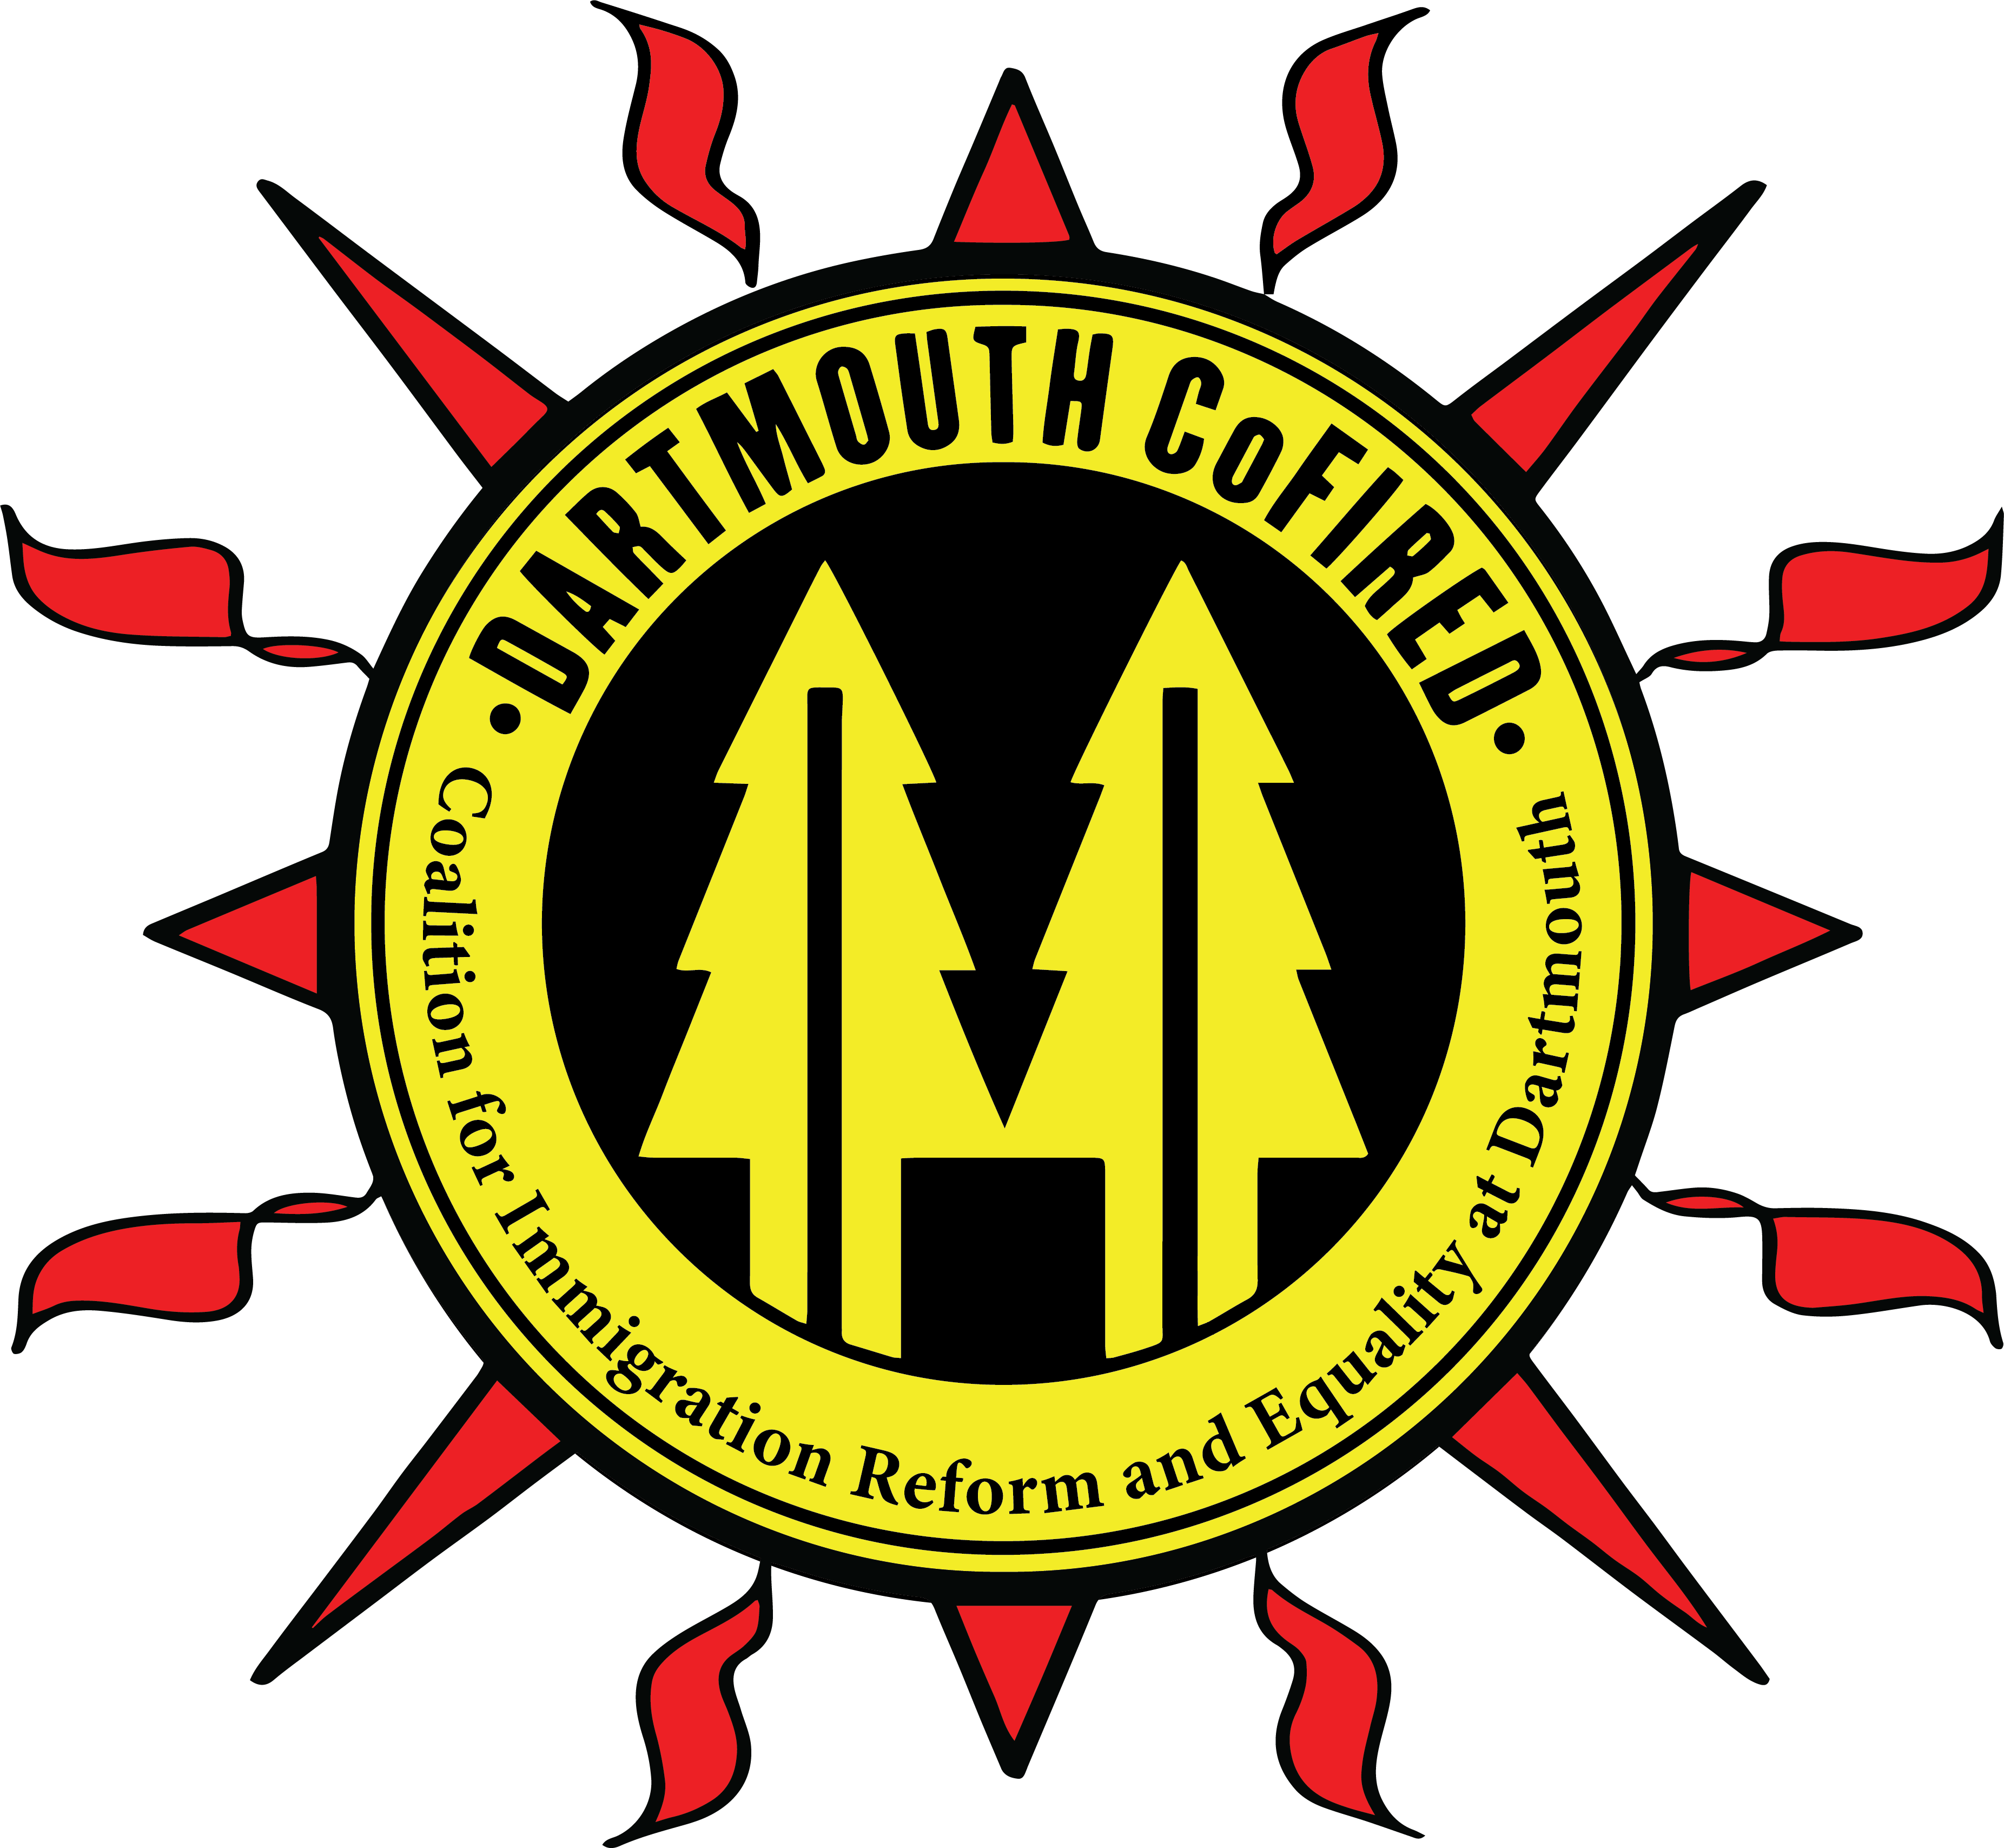 Coalition For Immigration Reform and Equality at Dartmouth